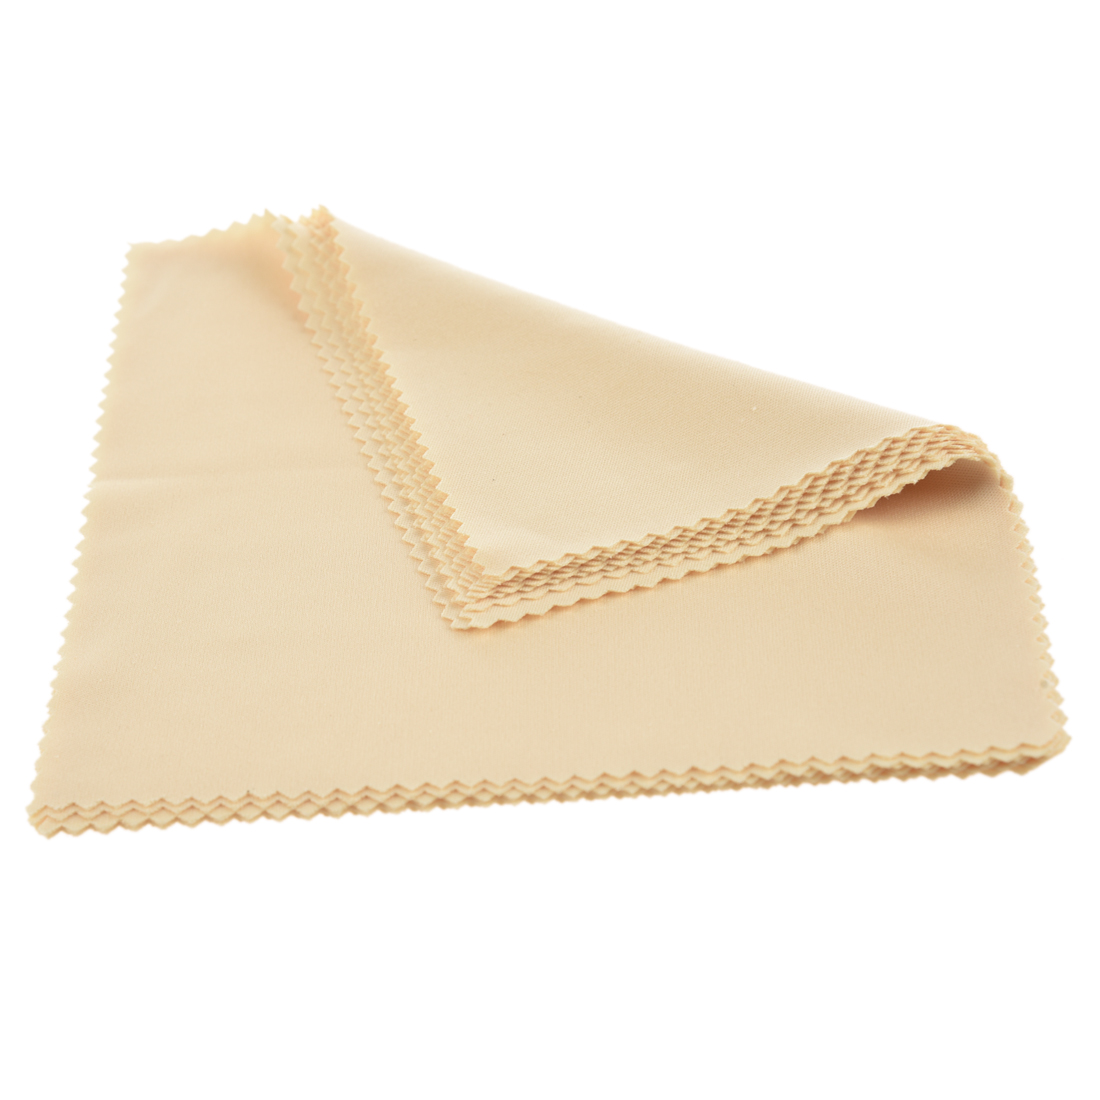 Microfiber Cloth Ebay Uk: 10X Microfibre Cleaning Cloth For Spectacles/Camera Lenses